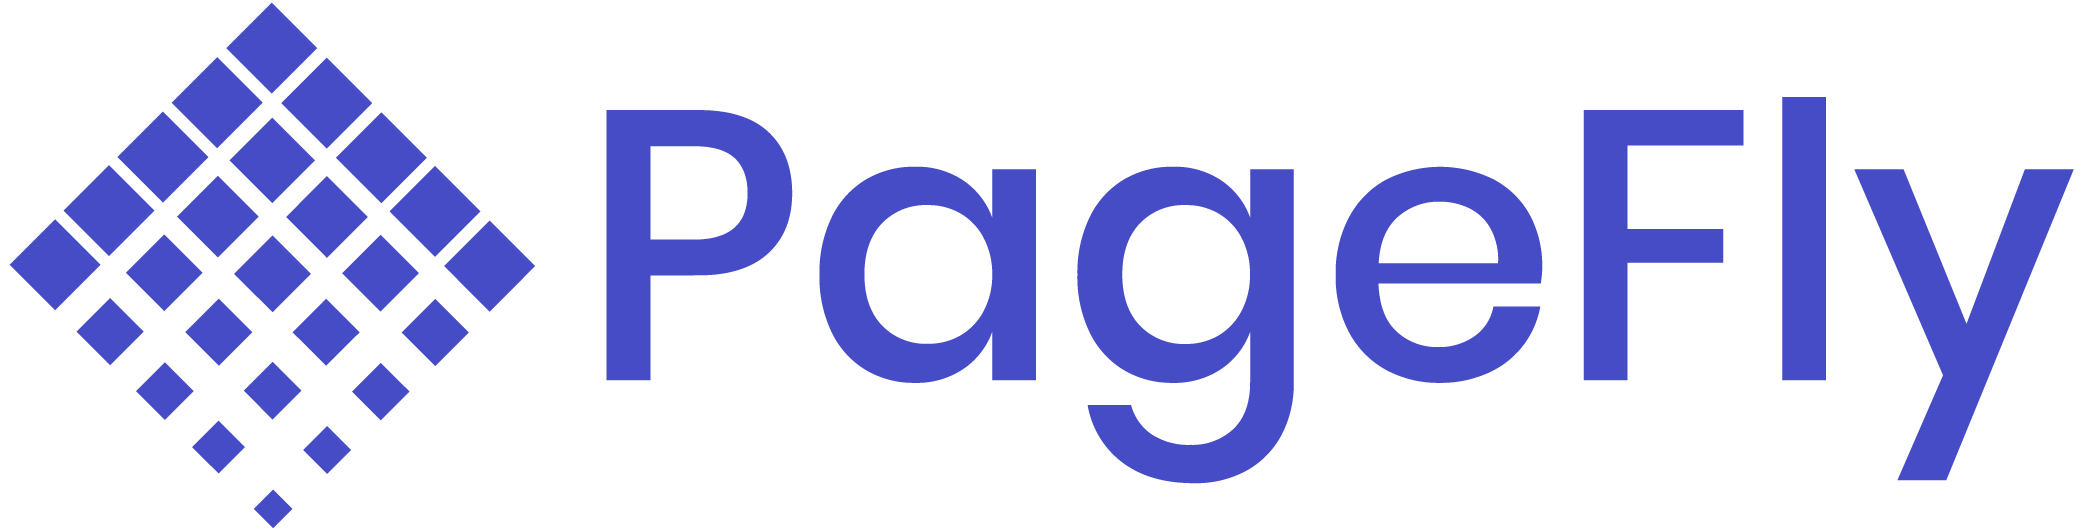 PageFly Coupon Code